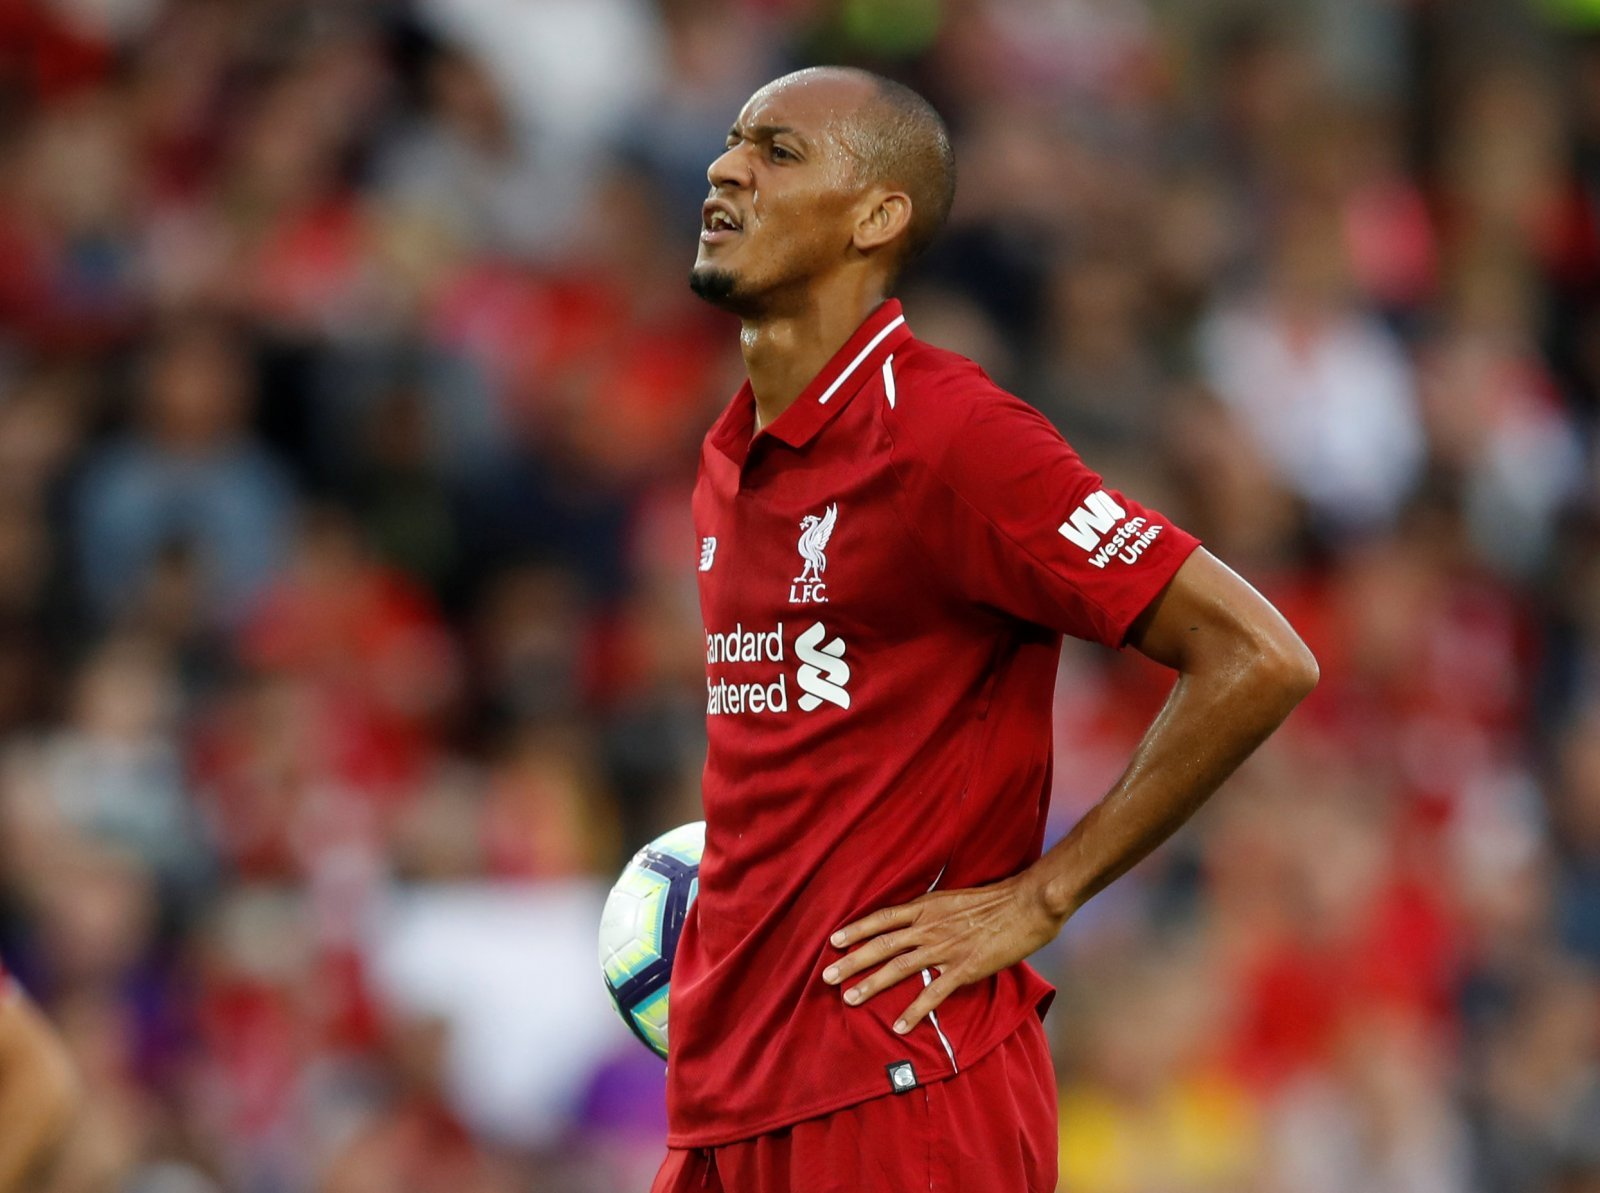 Liverpool fans can't wait for Fabinho to make his debut